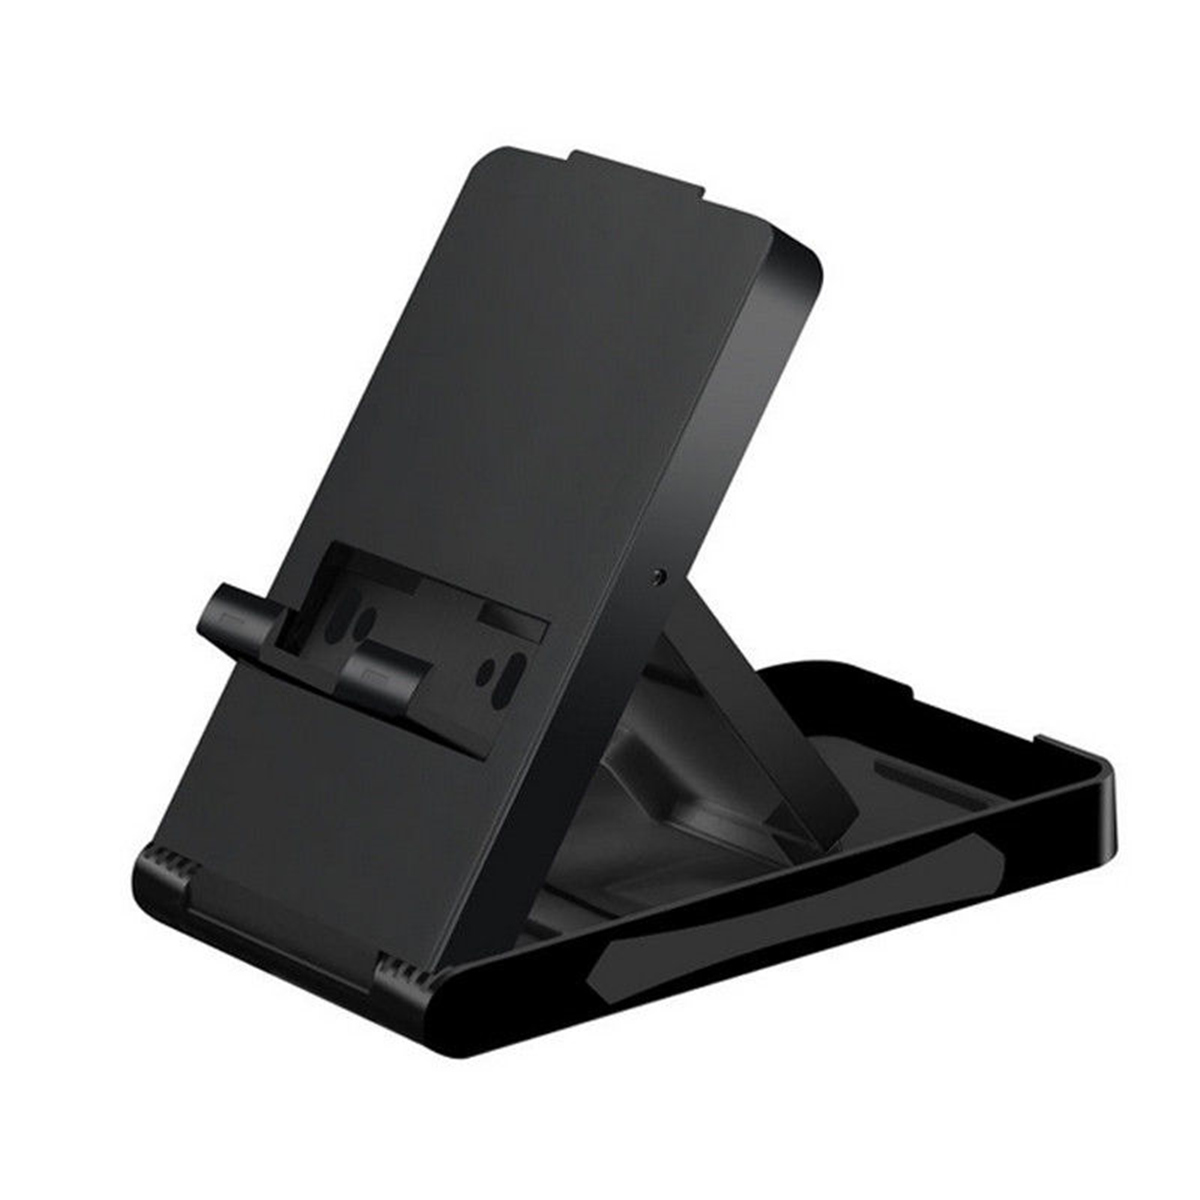 Bracket Stand Holder Mount Display Dock for Nintendo Switch Game Console 11